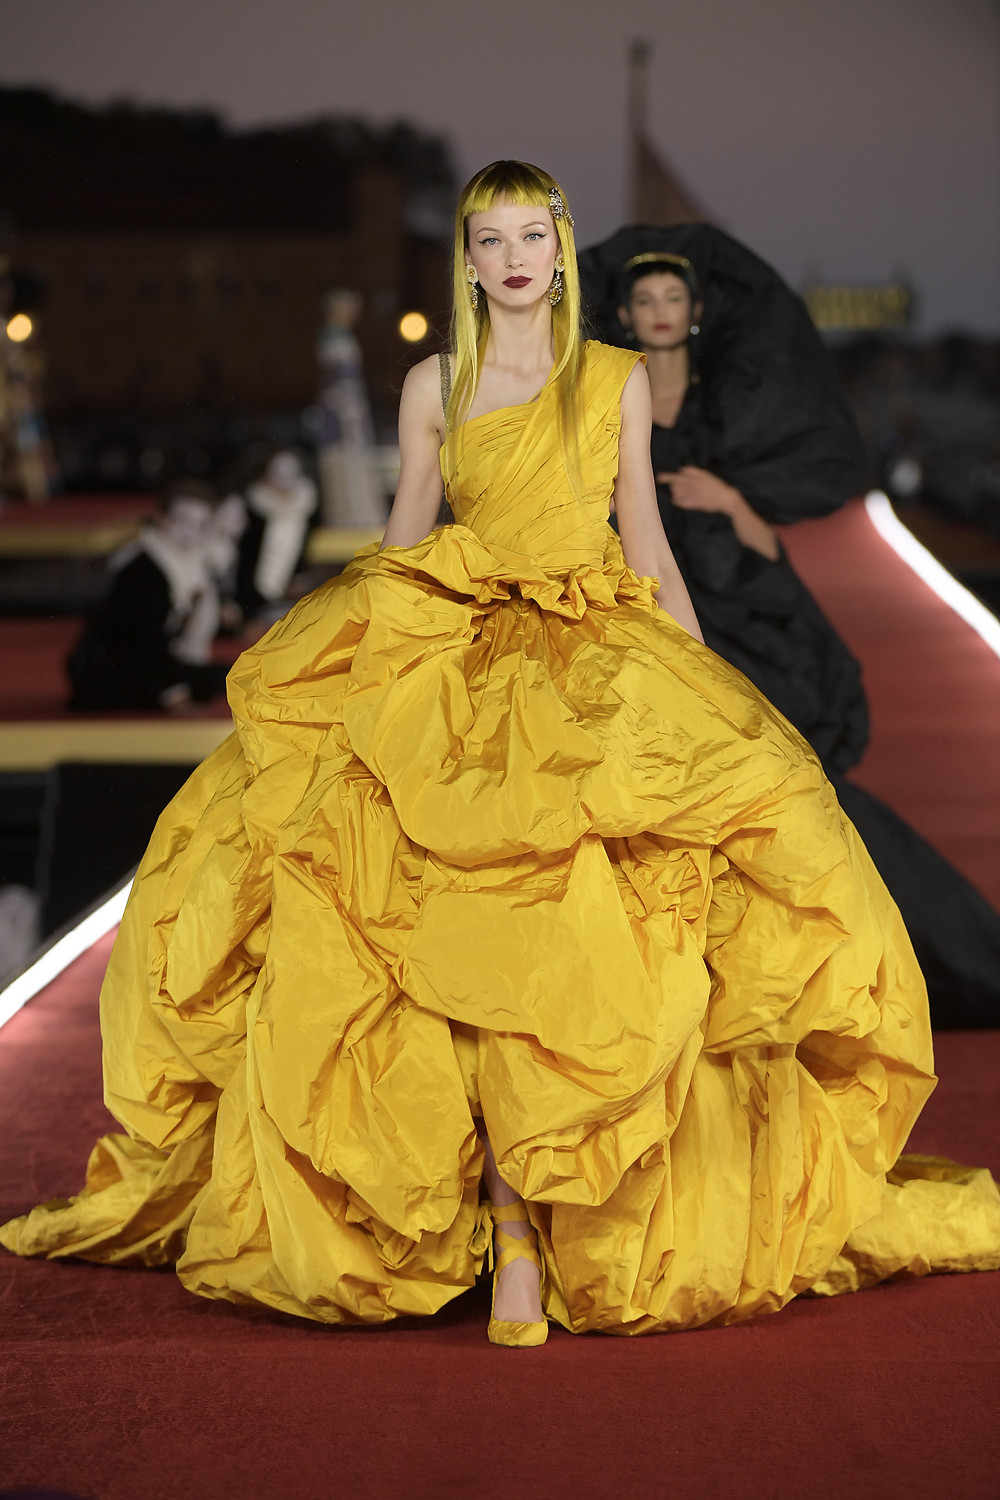 Dolce full yellow gown D+G site.jpg